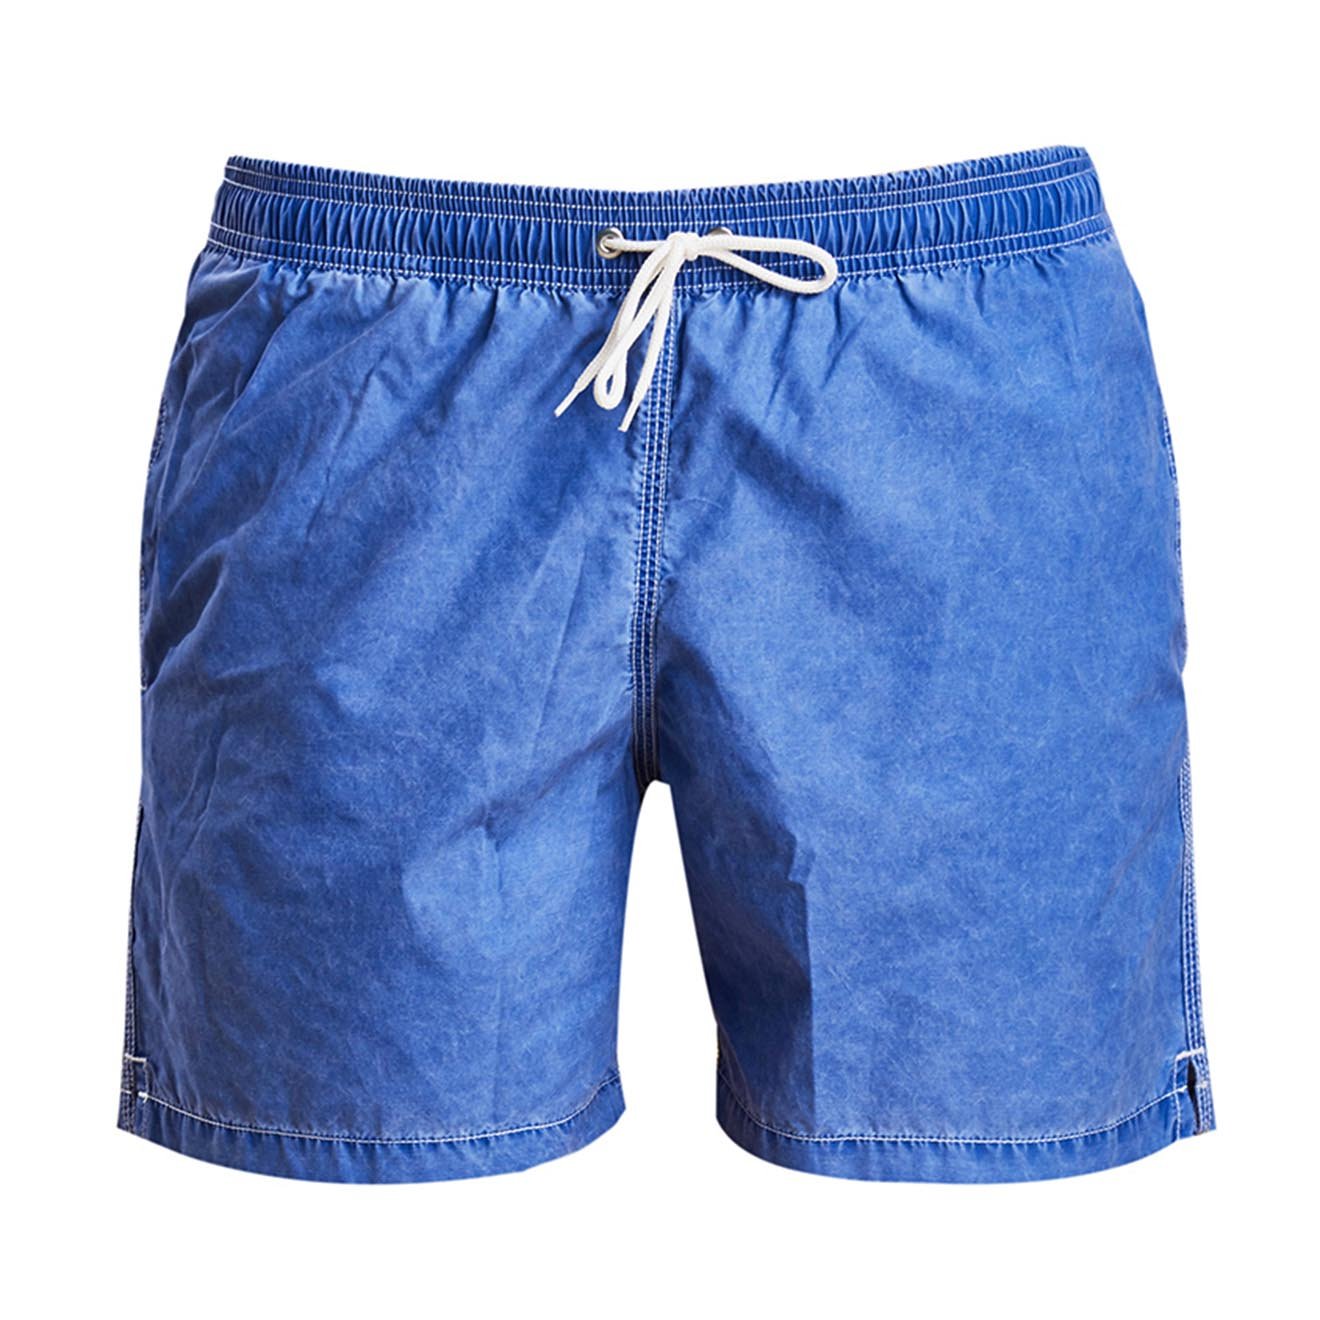 bc71166e6a45b Barbour Victor Swim Shorts Light Blue - The Sporting Lodge